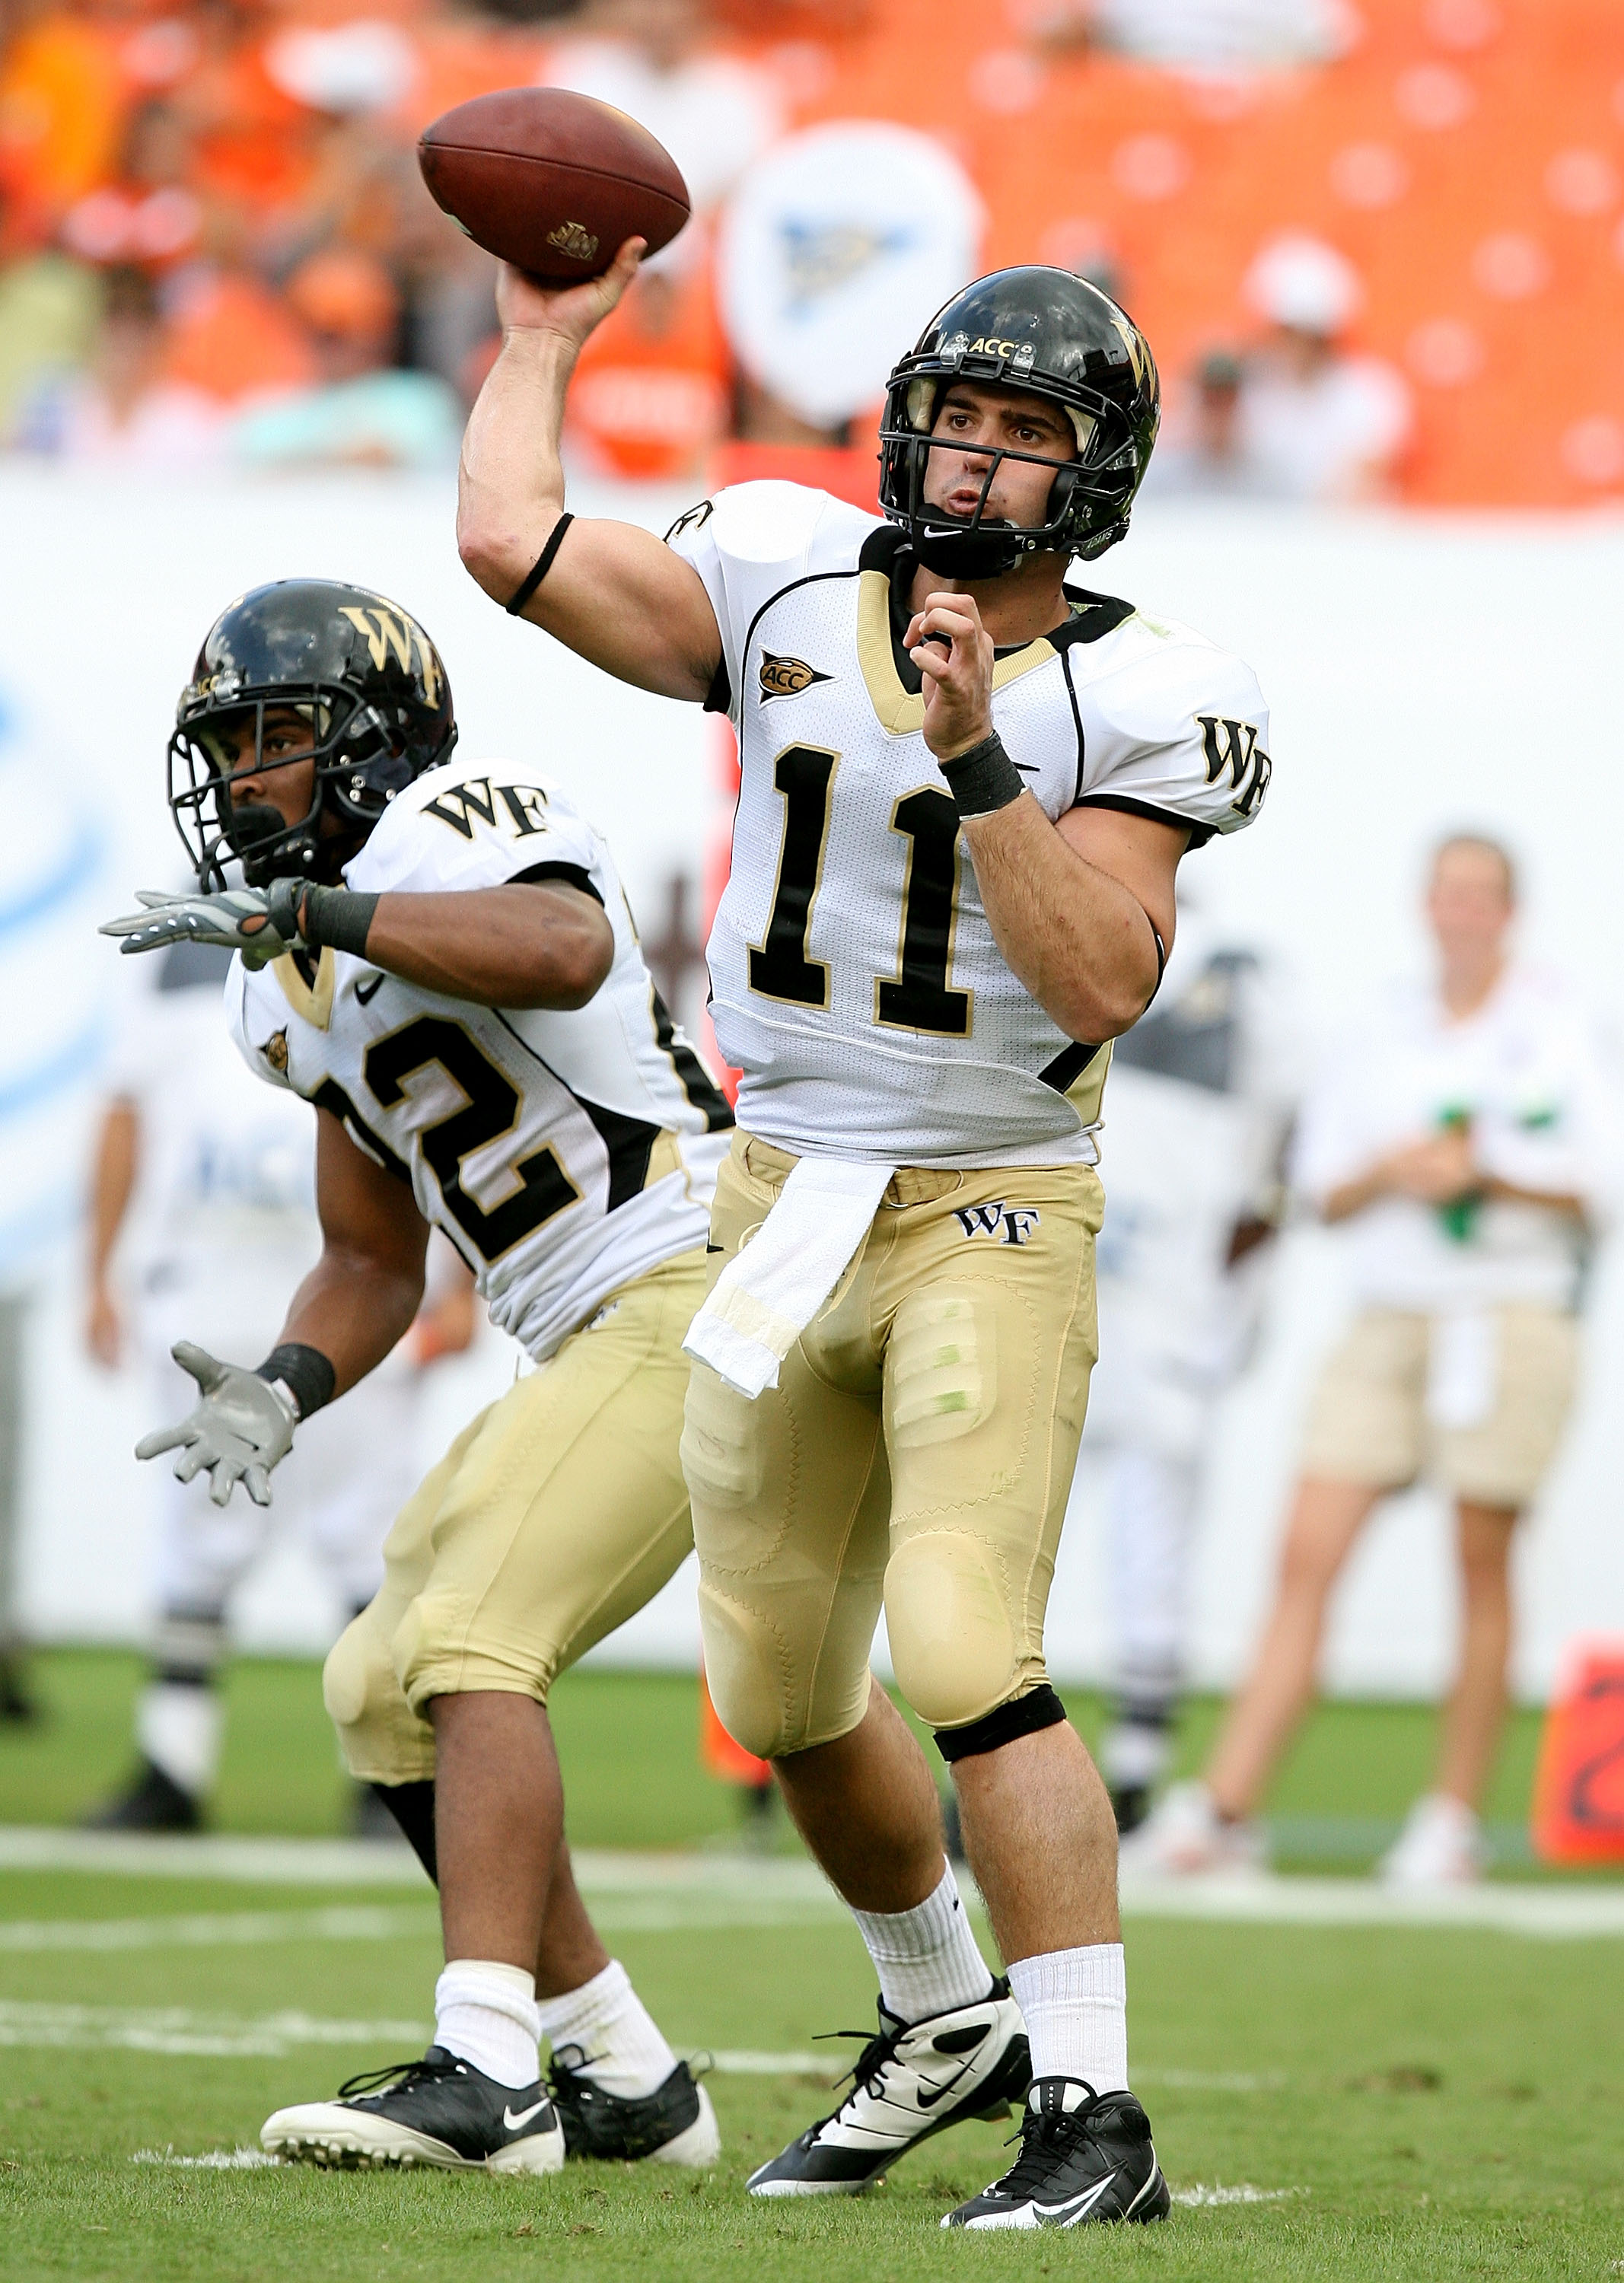 Cory McCartney: Dont forget about Wake QB Riley Skinner